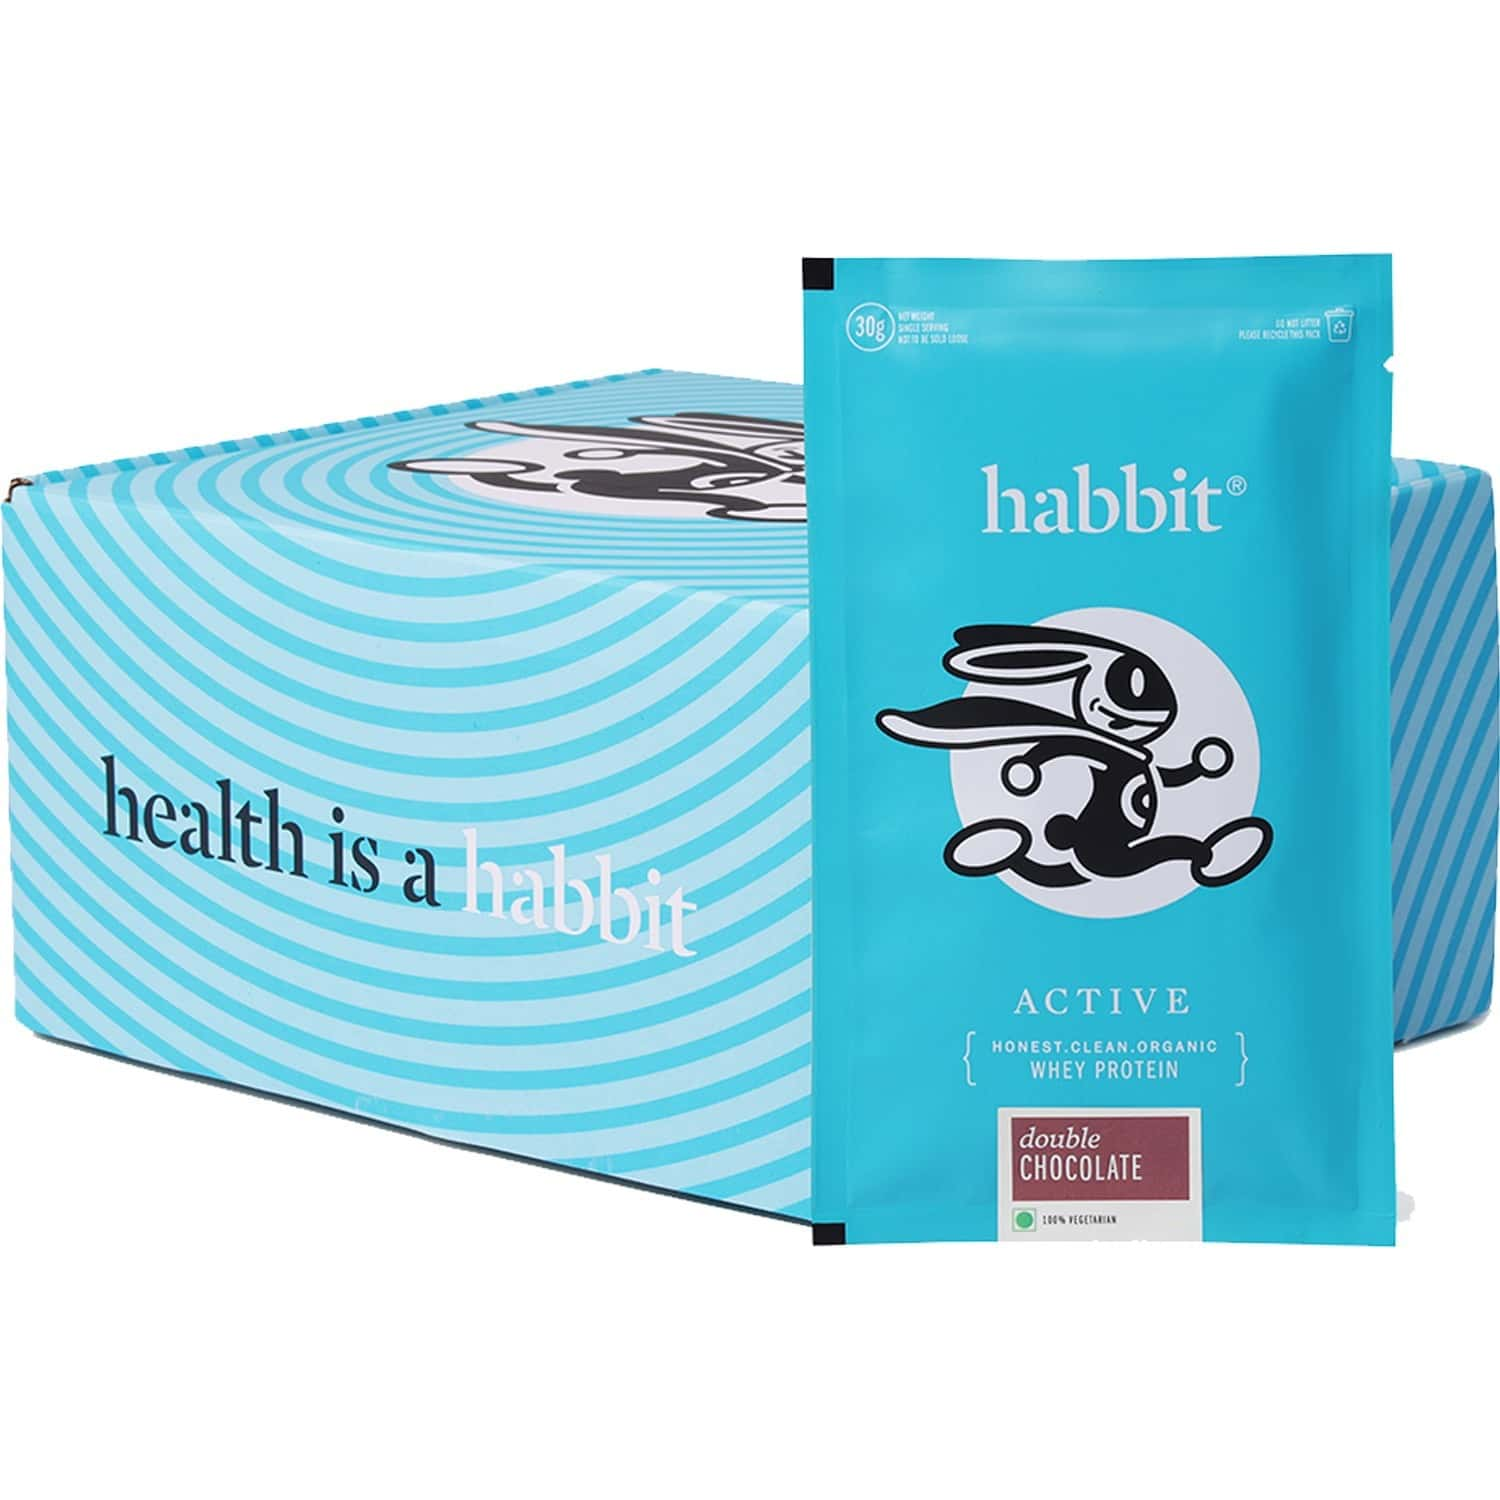 Habbit Active Whey Blend Protein Powder - 210 Gms, 7 Servings   Double Chocolate Flavour